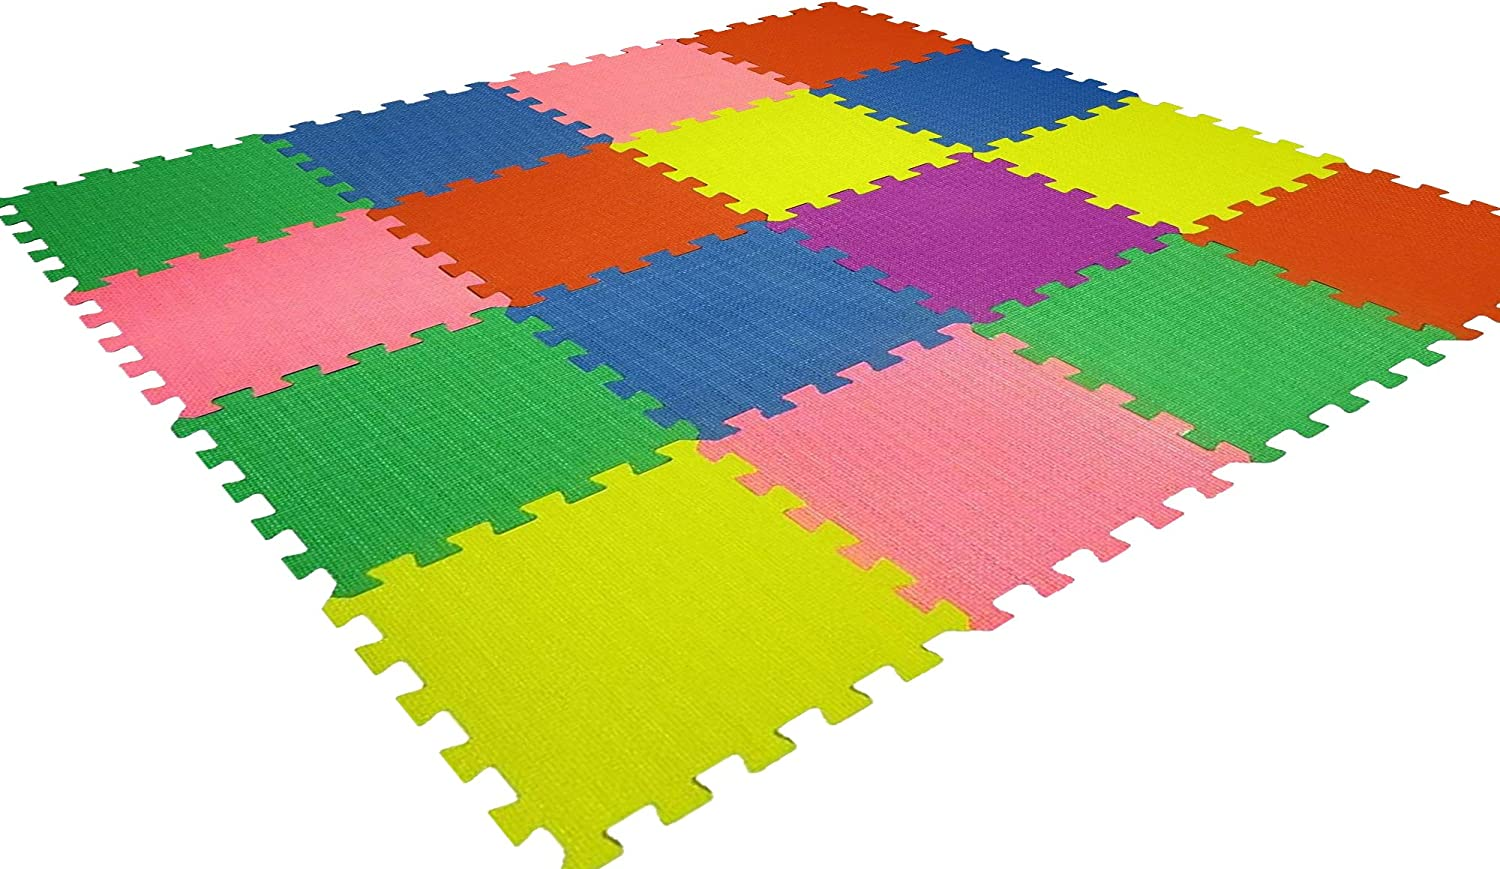 Kids Playmat Baby Foam Play-Mat - 16 X-Large Eva Soft Tile, Toddler Infant Safe - Ideal Gift Play Area Child Room, Interlocking Puzzle Multi Color Flooring Exercise Yoga Pilates Game Yard Superyard: Sports & Outdoors